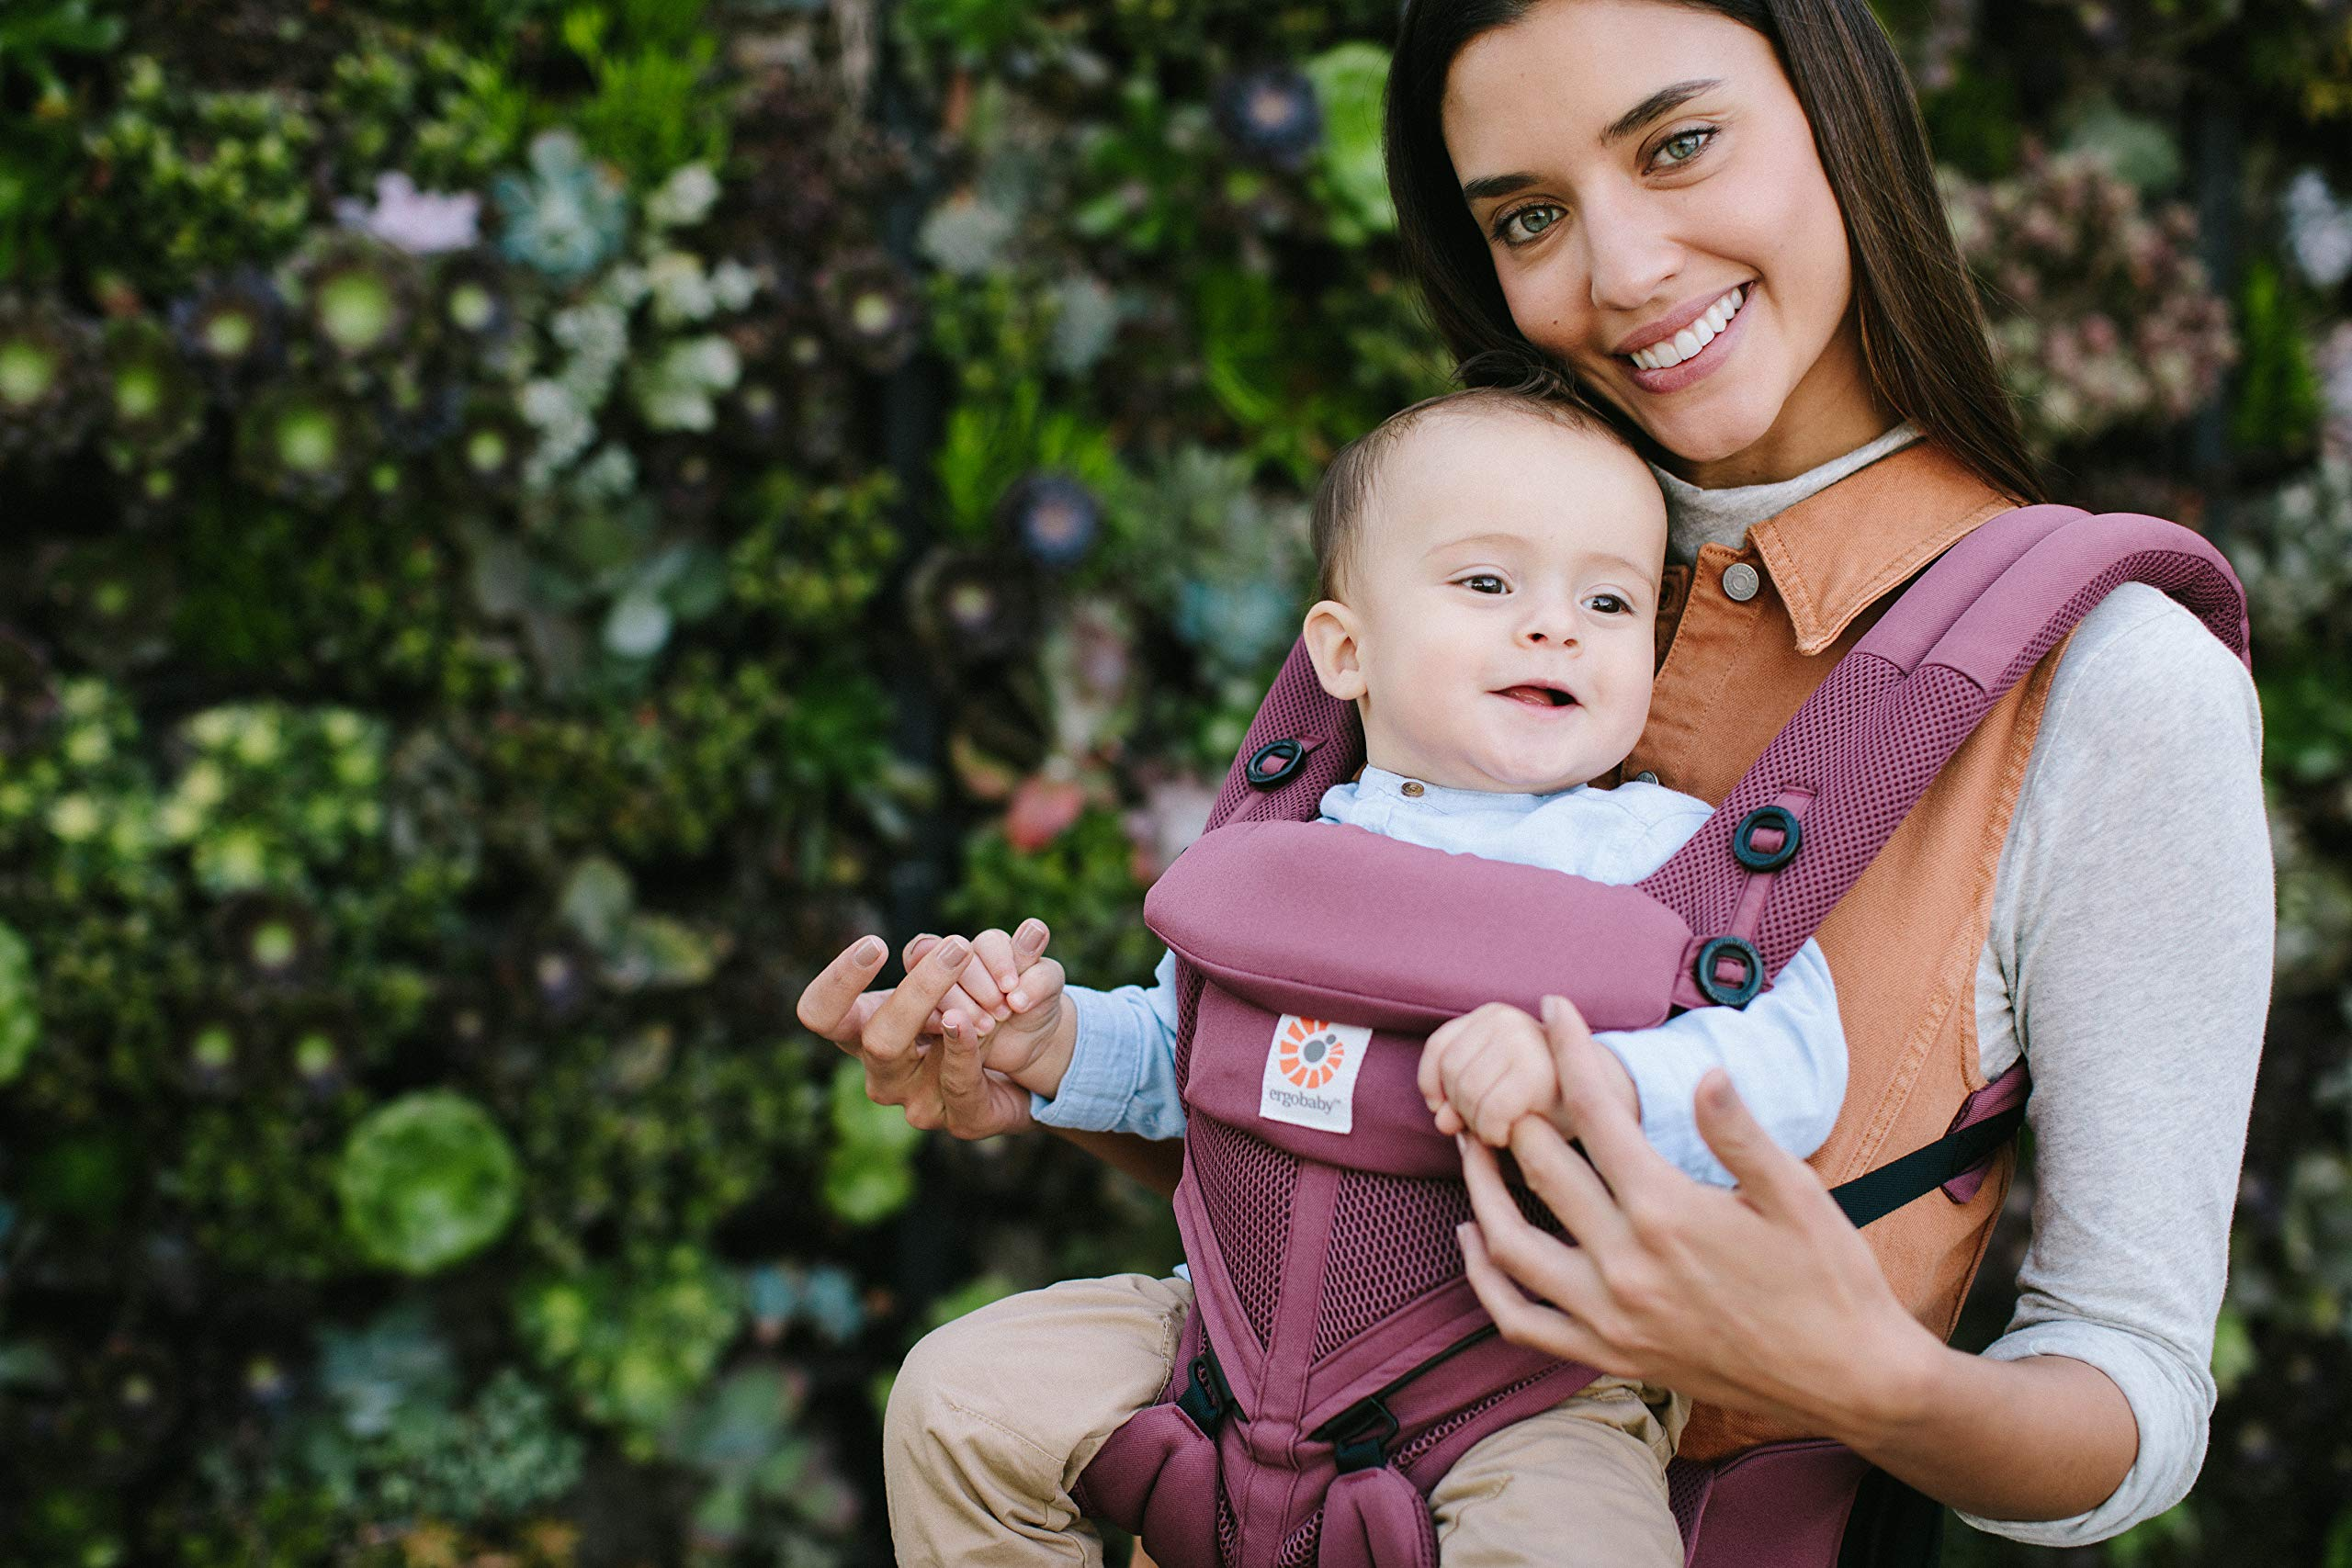 Ergobaby Baby Carrier for Newborn to Toddler, 4-Position Omni 360 Cool Air Plum, Breathable Ergonomic Child Carrier & Backpack Ergobaby BABY CARRIER FOR NEWBORN - Adapts to your growing baby from birth to toddler (7-45lbs). 4 carry positions: front-inward, back, hip, and front-outward. A Baby hood for sun protection (UPF 50+) & privacy for sleeping or breastfeeding is included. COMFORT - Exceptional lower back comfort with padded lumbar support waist belt & extra padded shoulder straps with the option to wear 2 ways: crossed or backpack style. Waist belt can be worn high or low to maximize comfort. COOL & BREATHABLE - Our Cool Air Mesh baby carriers are made with soft and durable mesh fabric that provides our renowned ergonomic support for baby while allowing for ultimate breathability and airflow 4